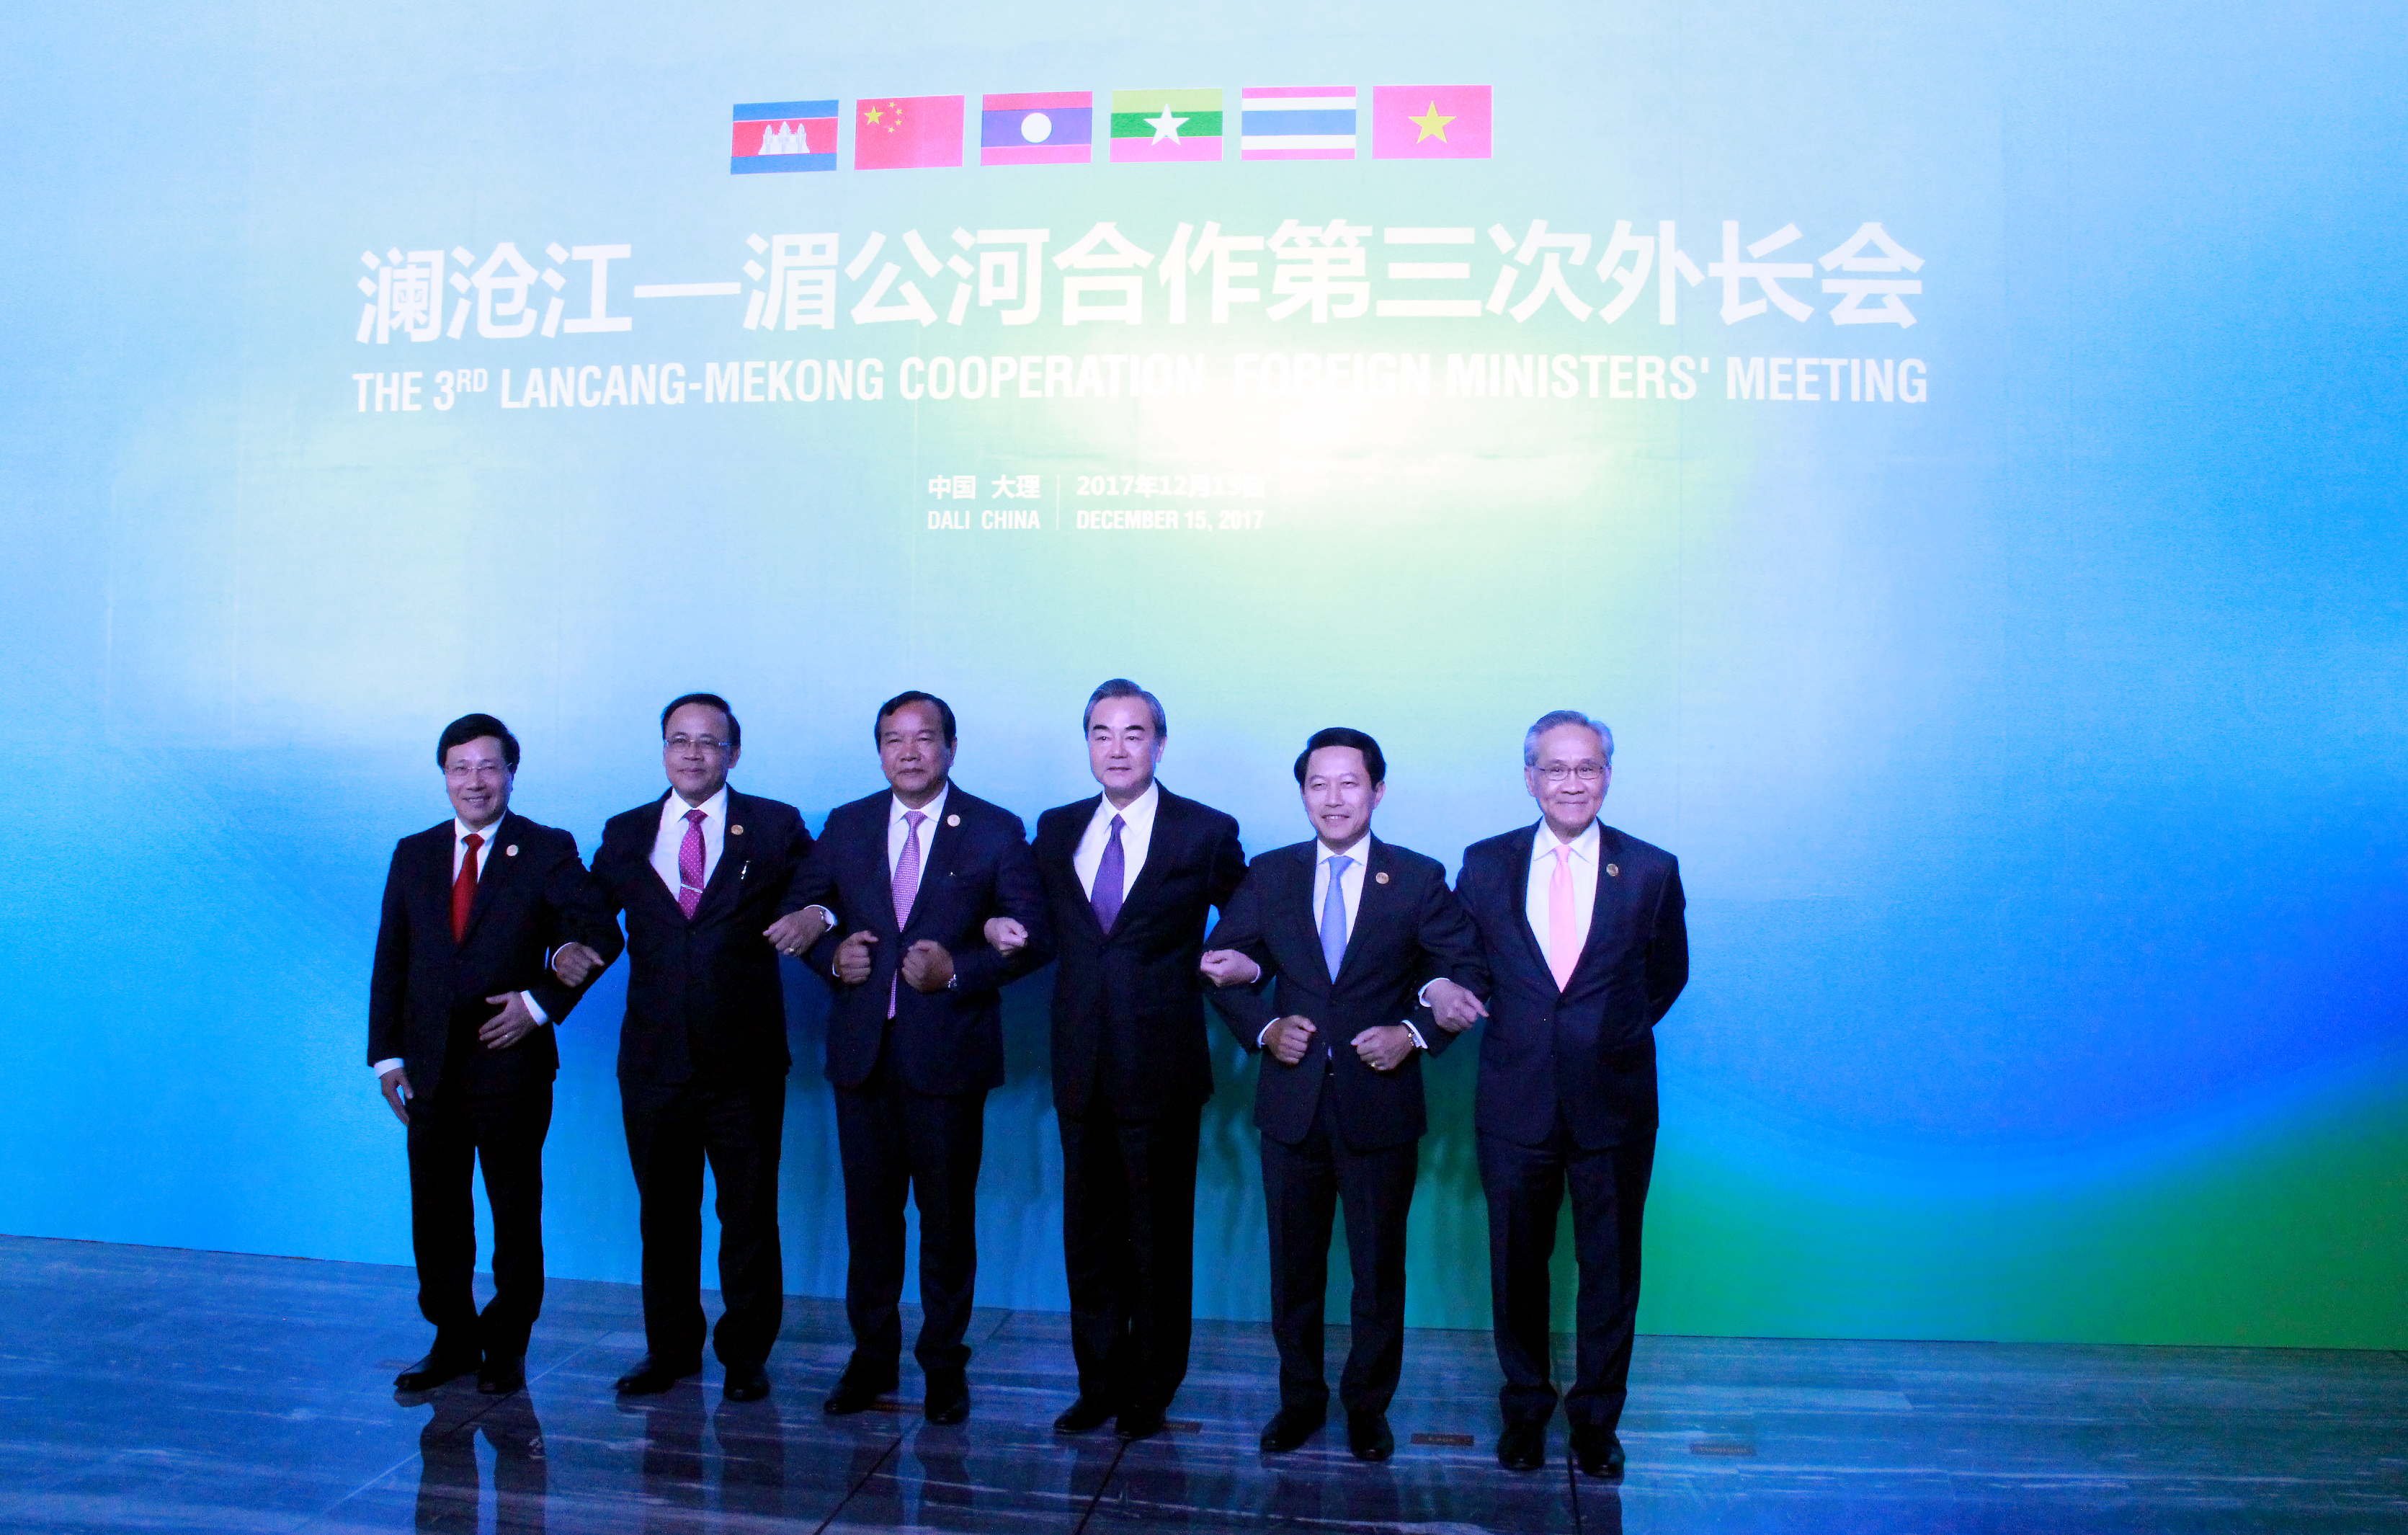 3rd LMC Foreign Ministers' Meeting held in Dali